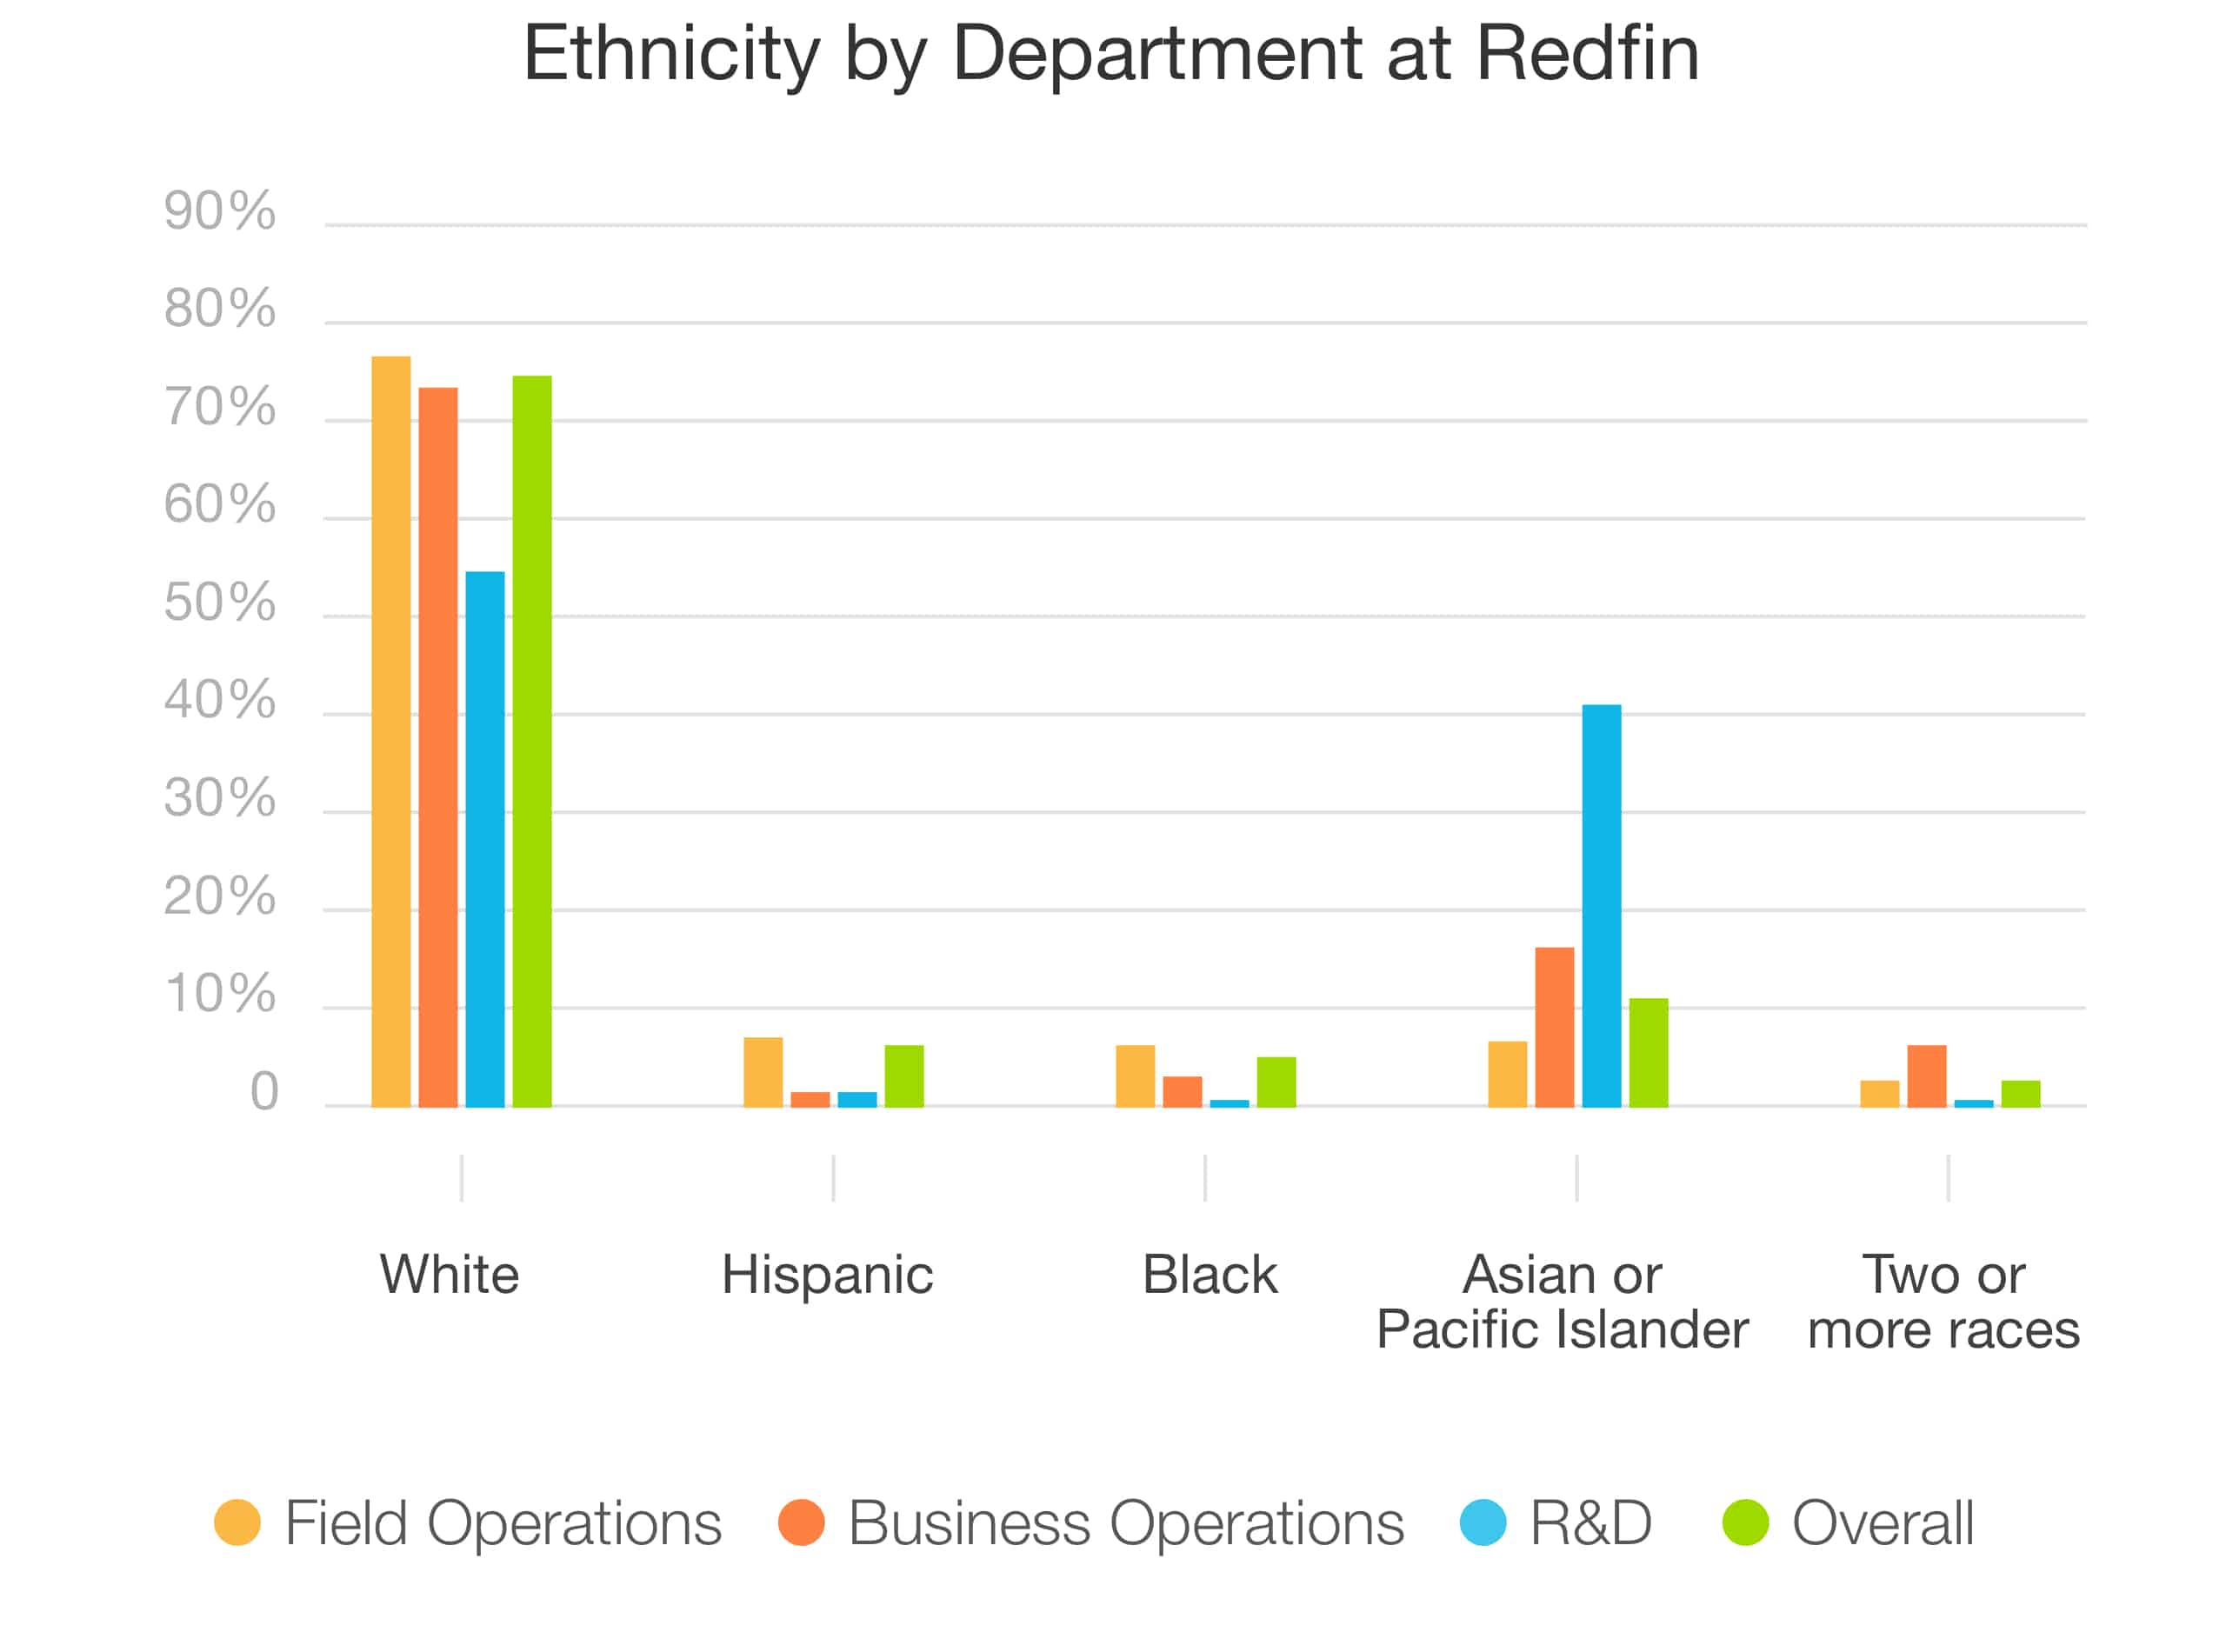 Ethnicity-by-Department-at-Redfin